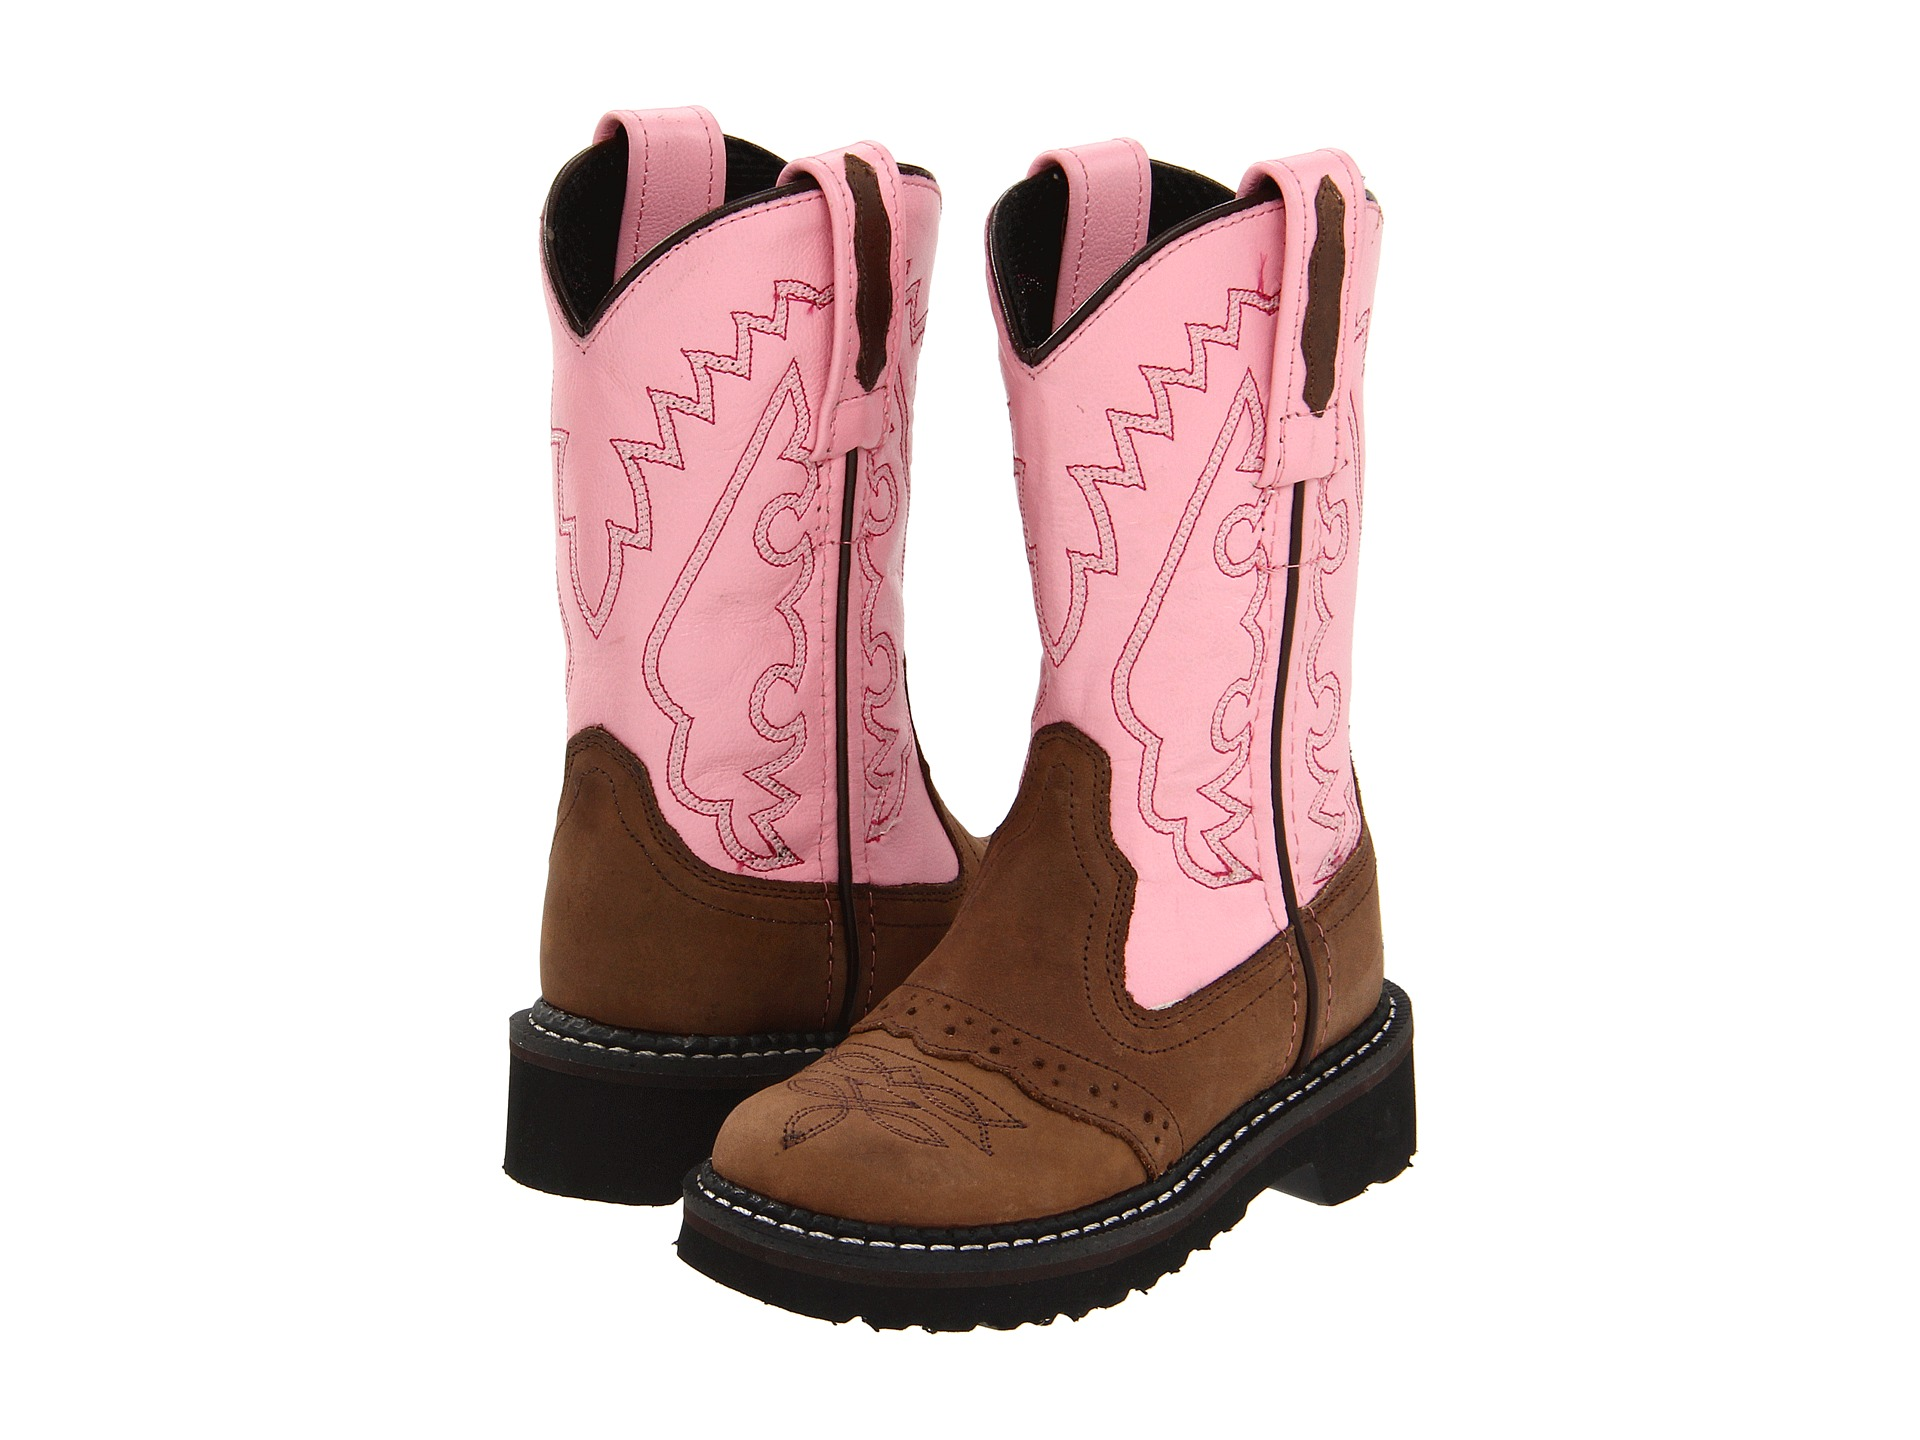 Adventure-Ready Boots for Kids. It's little boots for big adventures-watch your child take over the trail in boots and outdoor shoes for kids. Kids need boots crafted for comfort and durability.